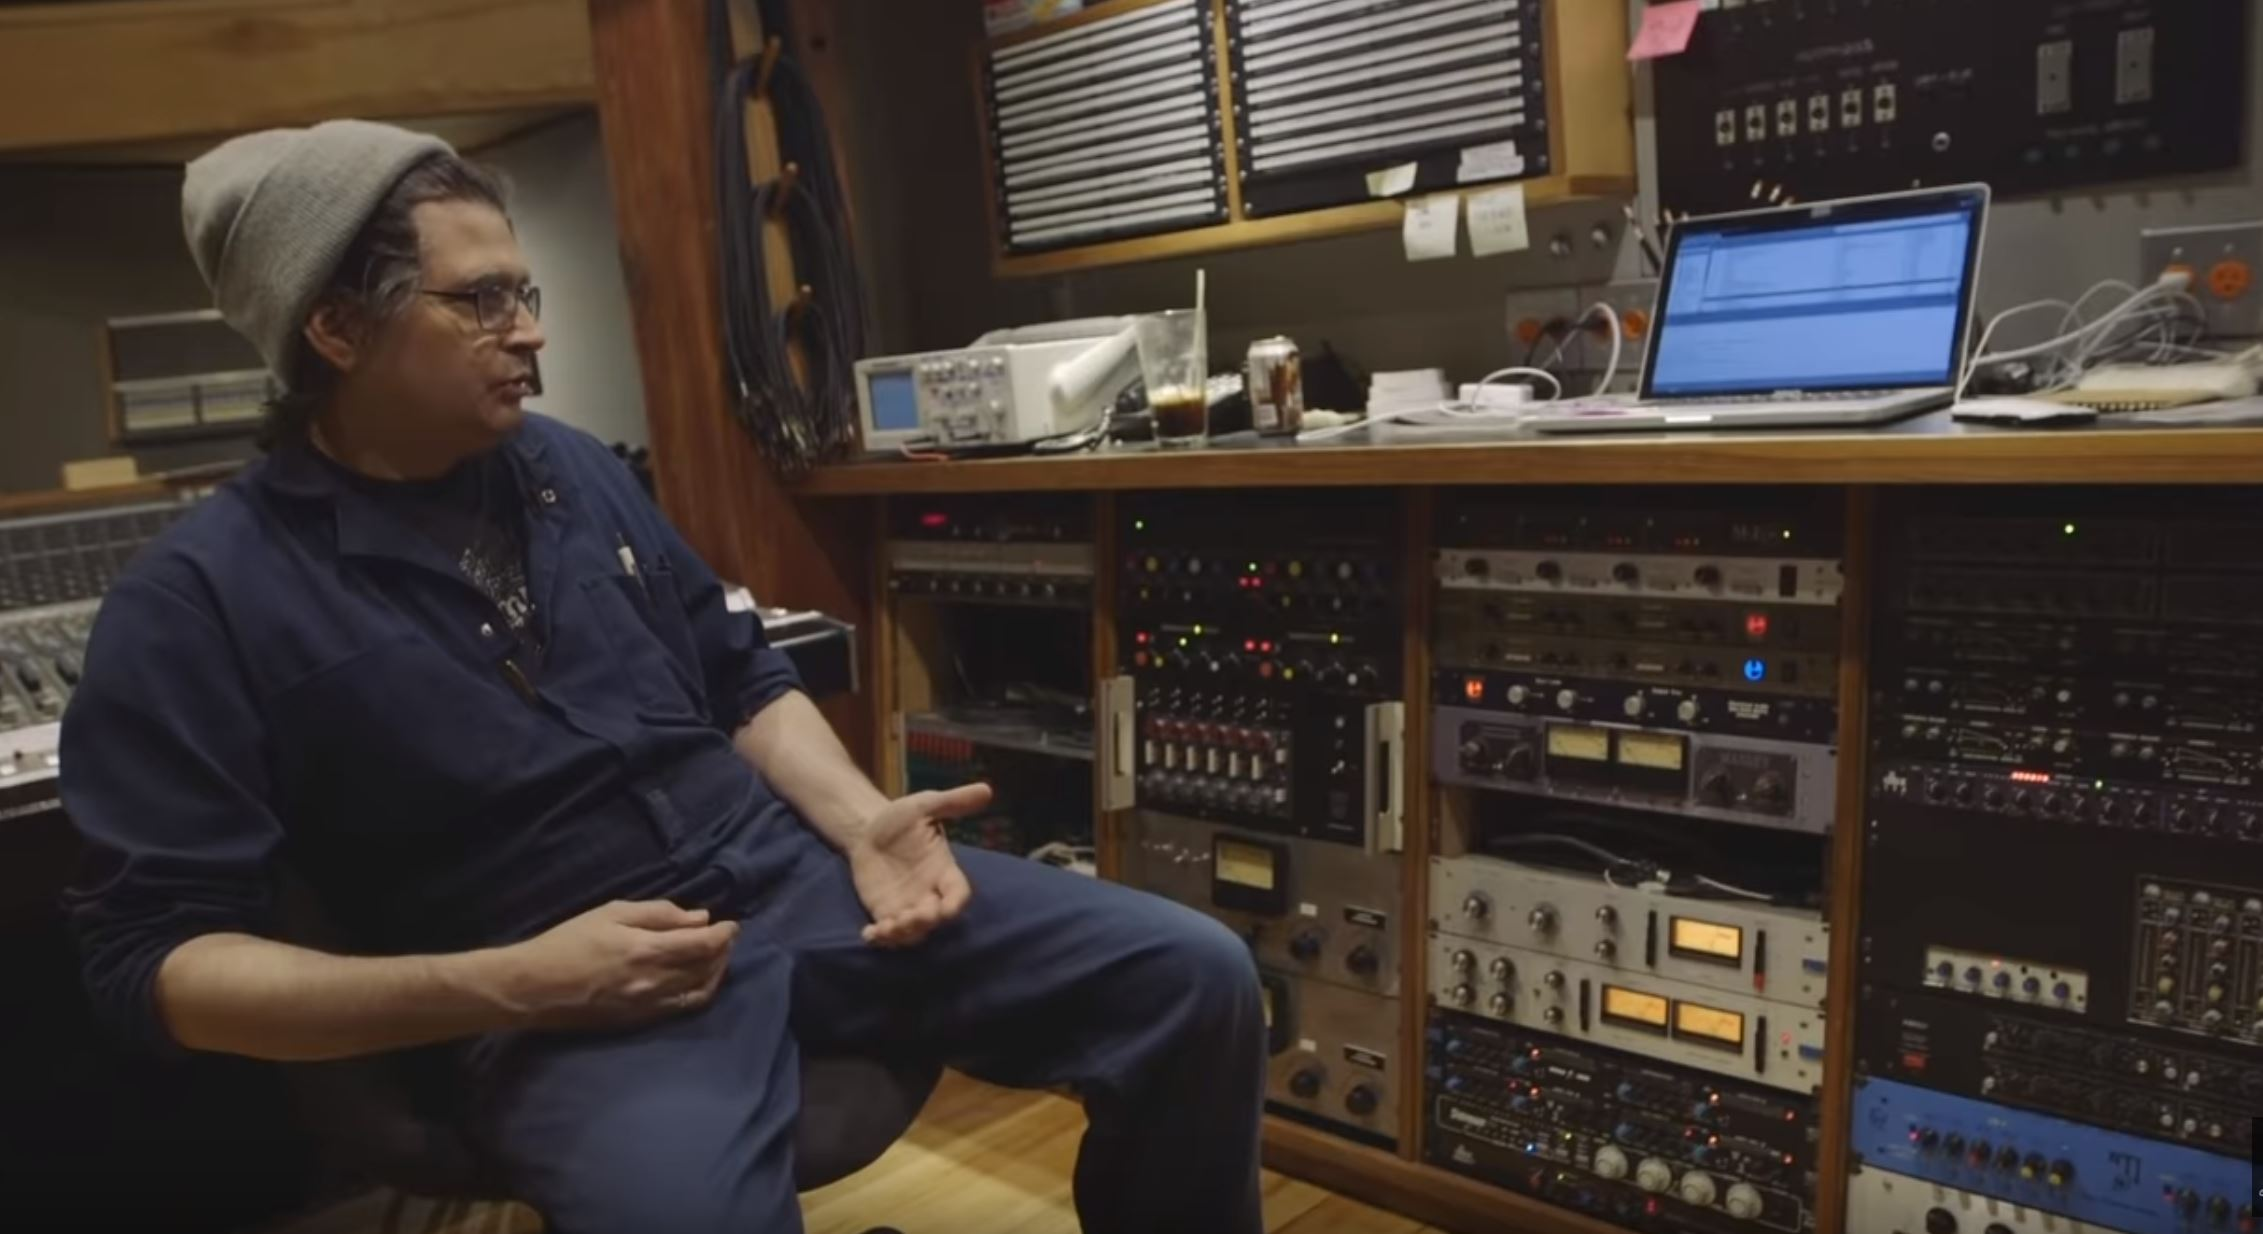 Show Us Your Junk! Steve Albini (Shellac, Big Black) Shows off his studios